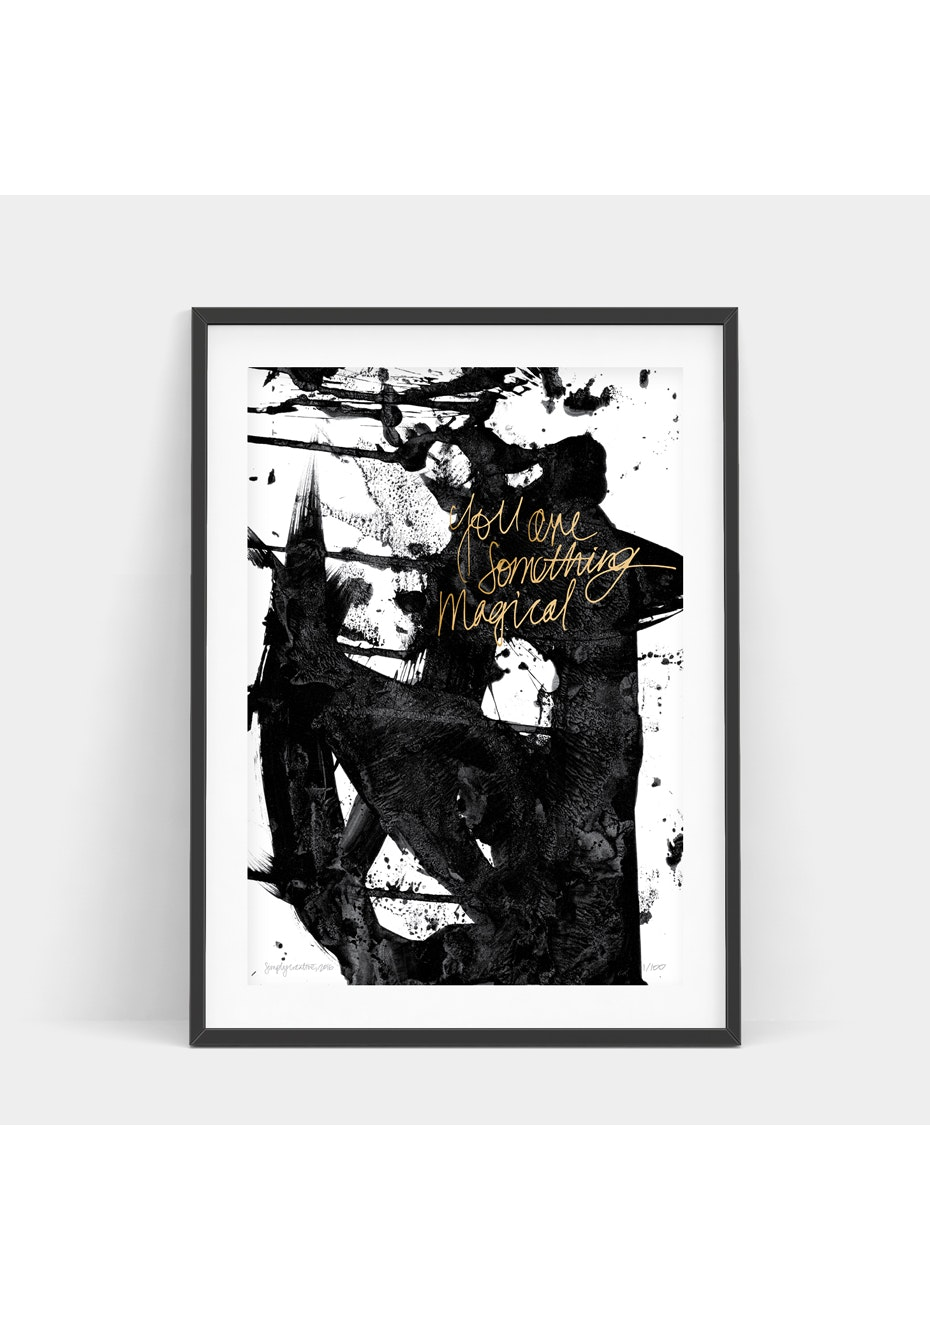 Simply Creative - Magical Attraction - A3 Gold Foil Limited Edition  Print